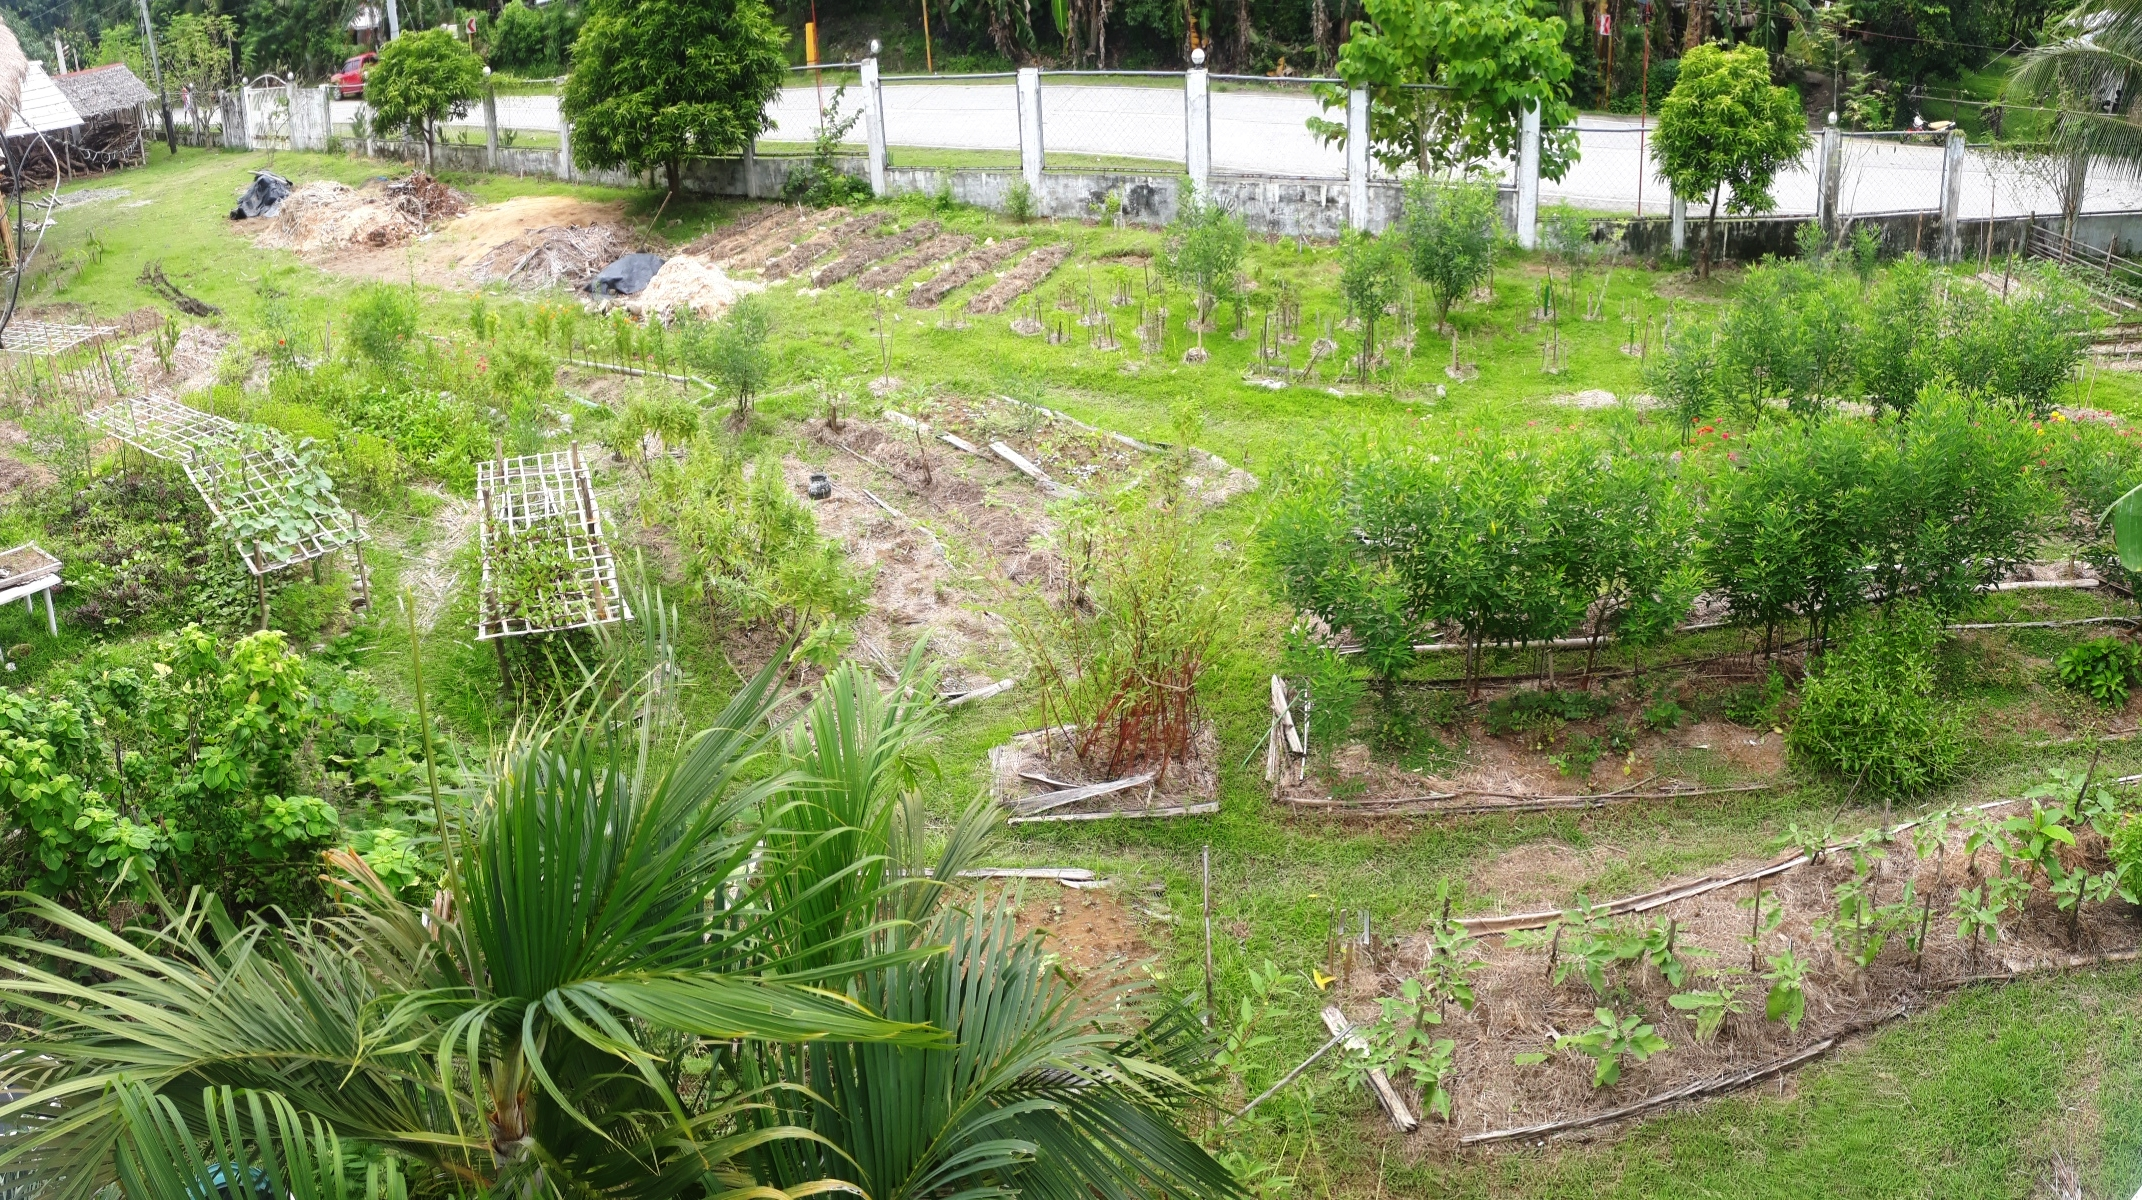 A bird's eye view of one section of our permaculture farm